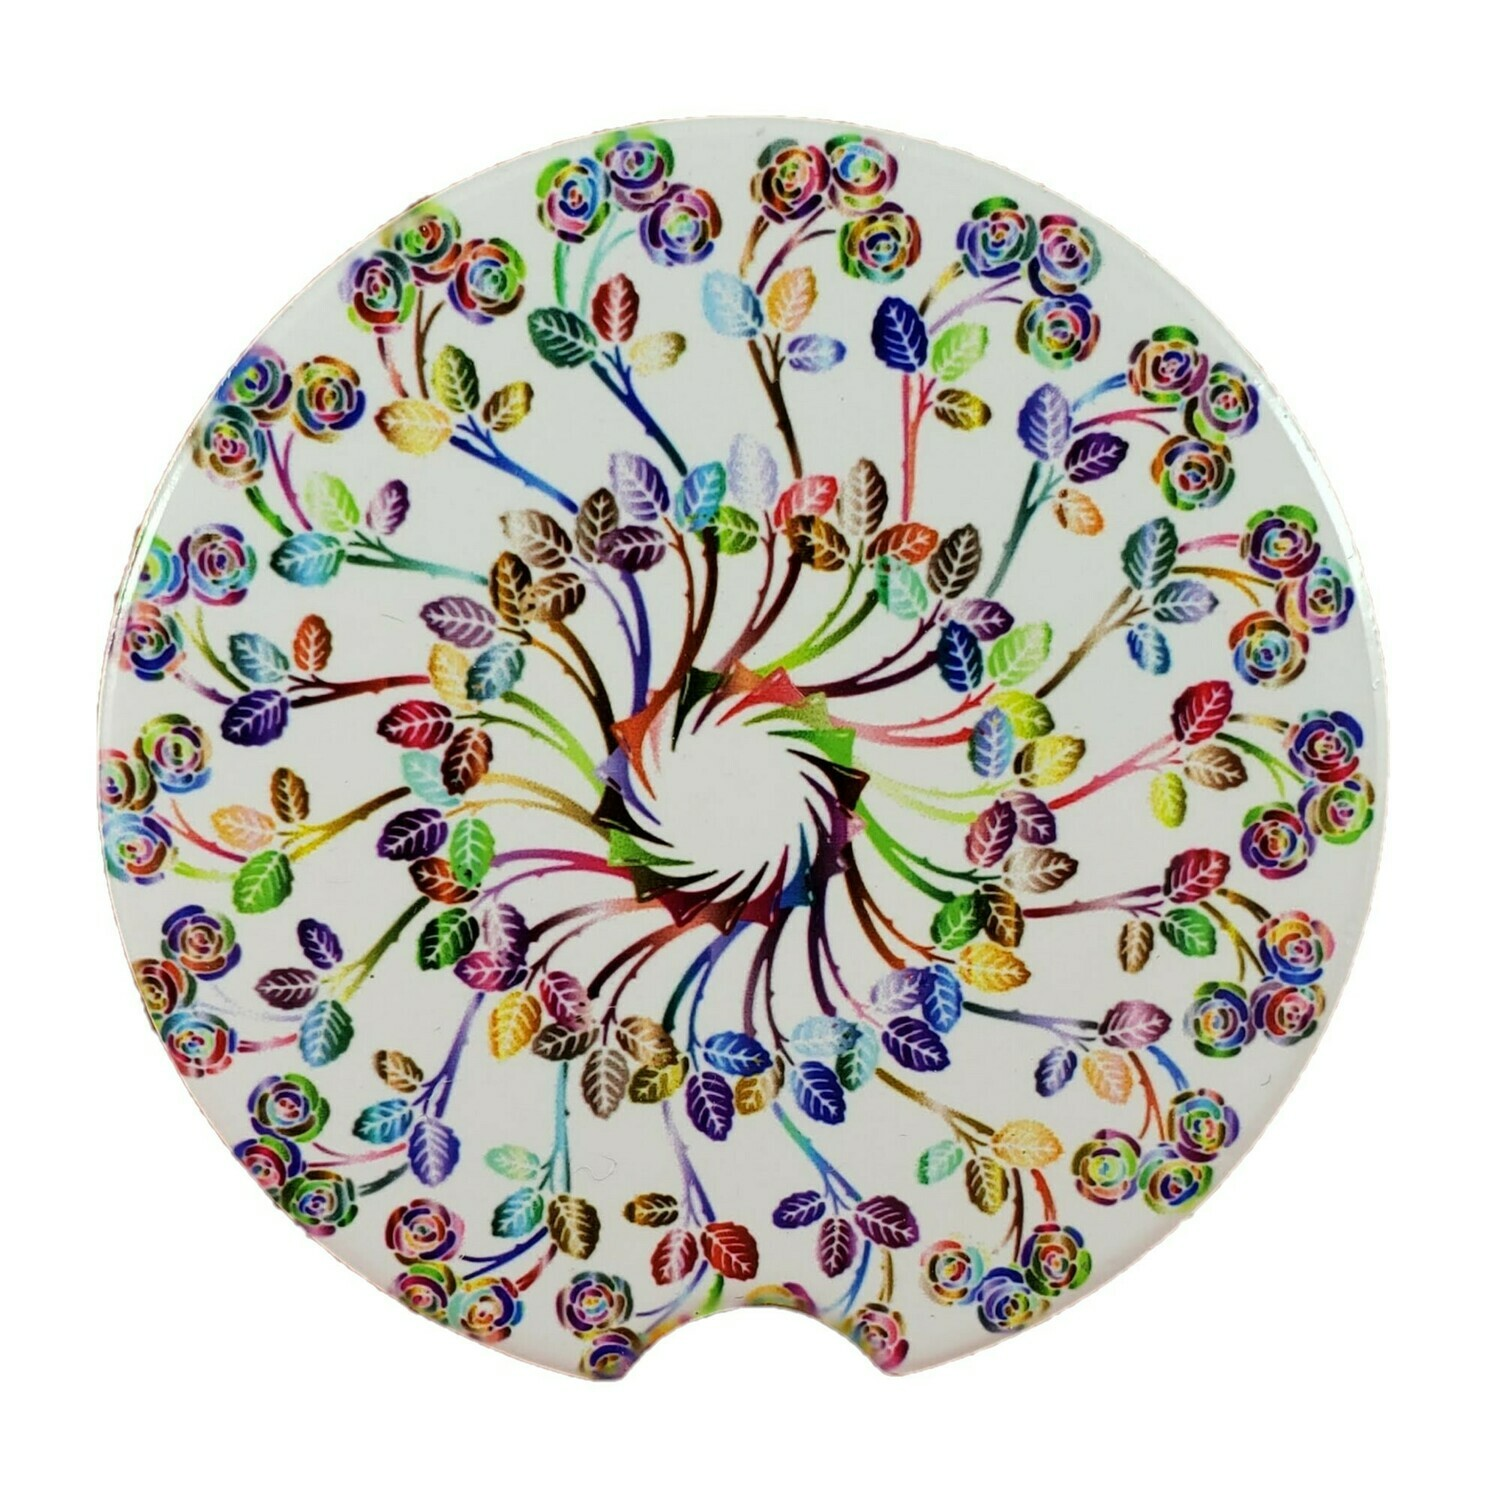 Floral Mandala Ceramic Car Coaster - Set of Two